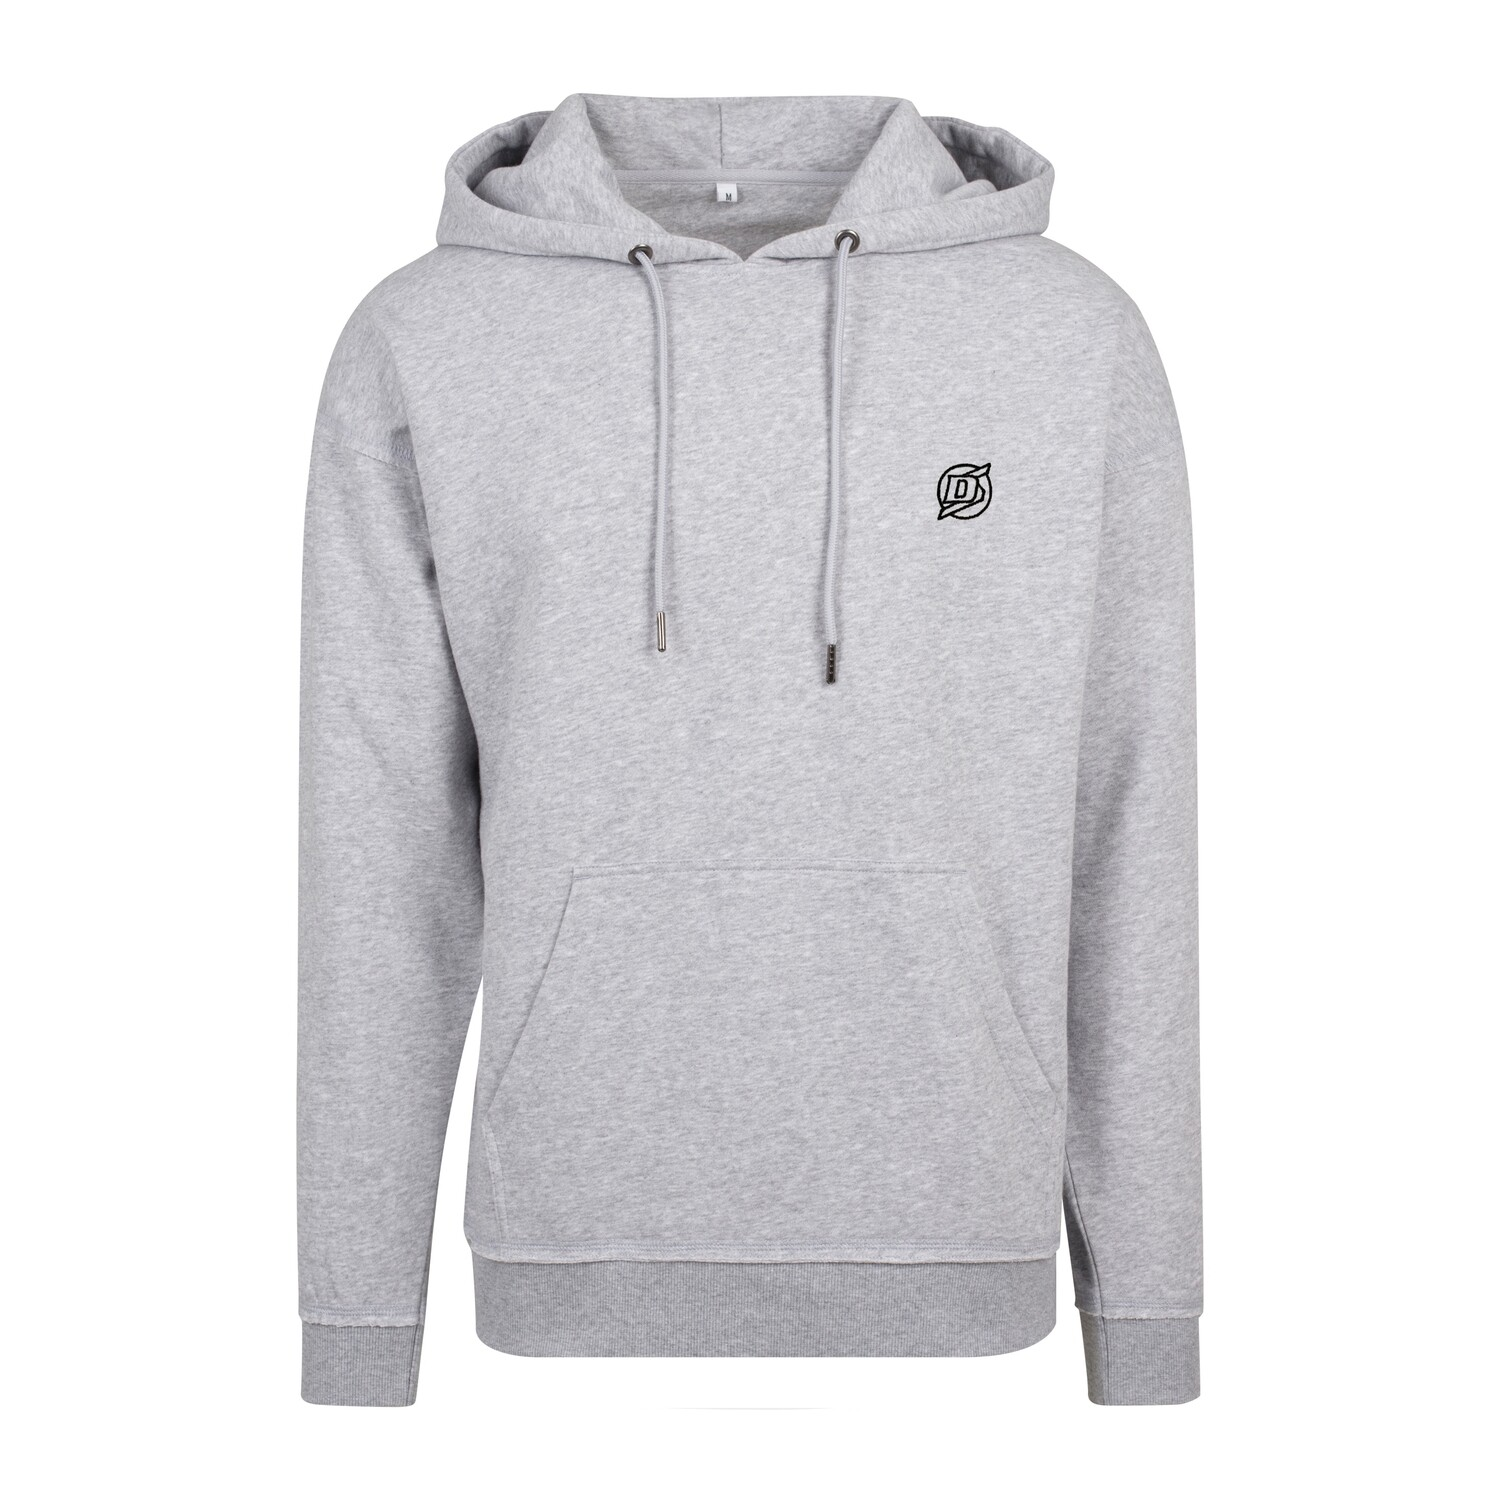 DS Oversize Grey Hoodie stitched